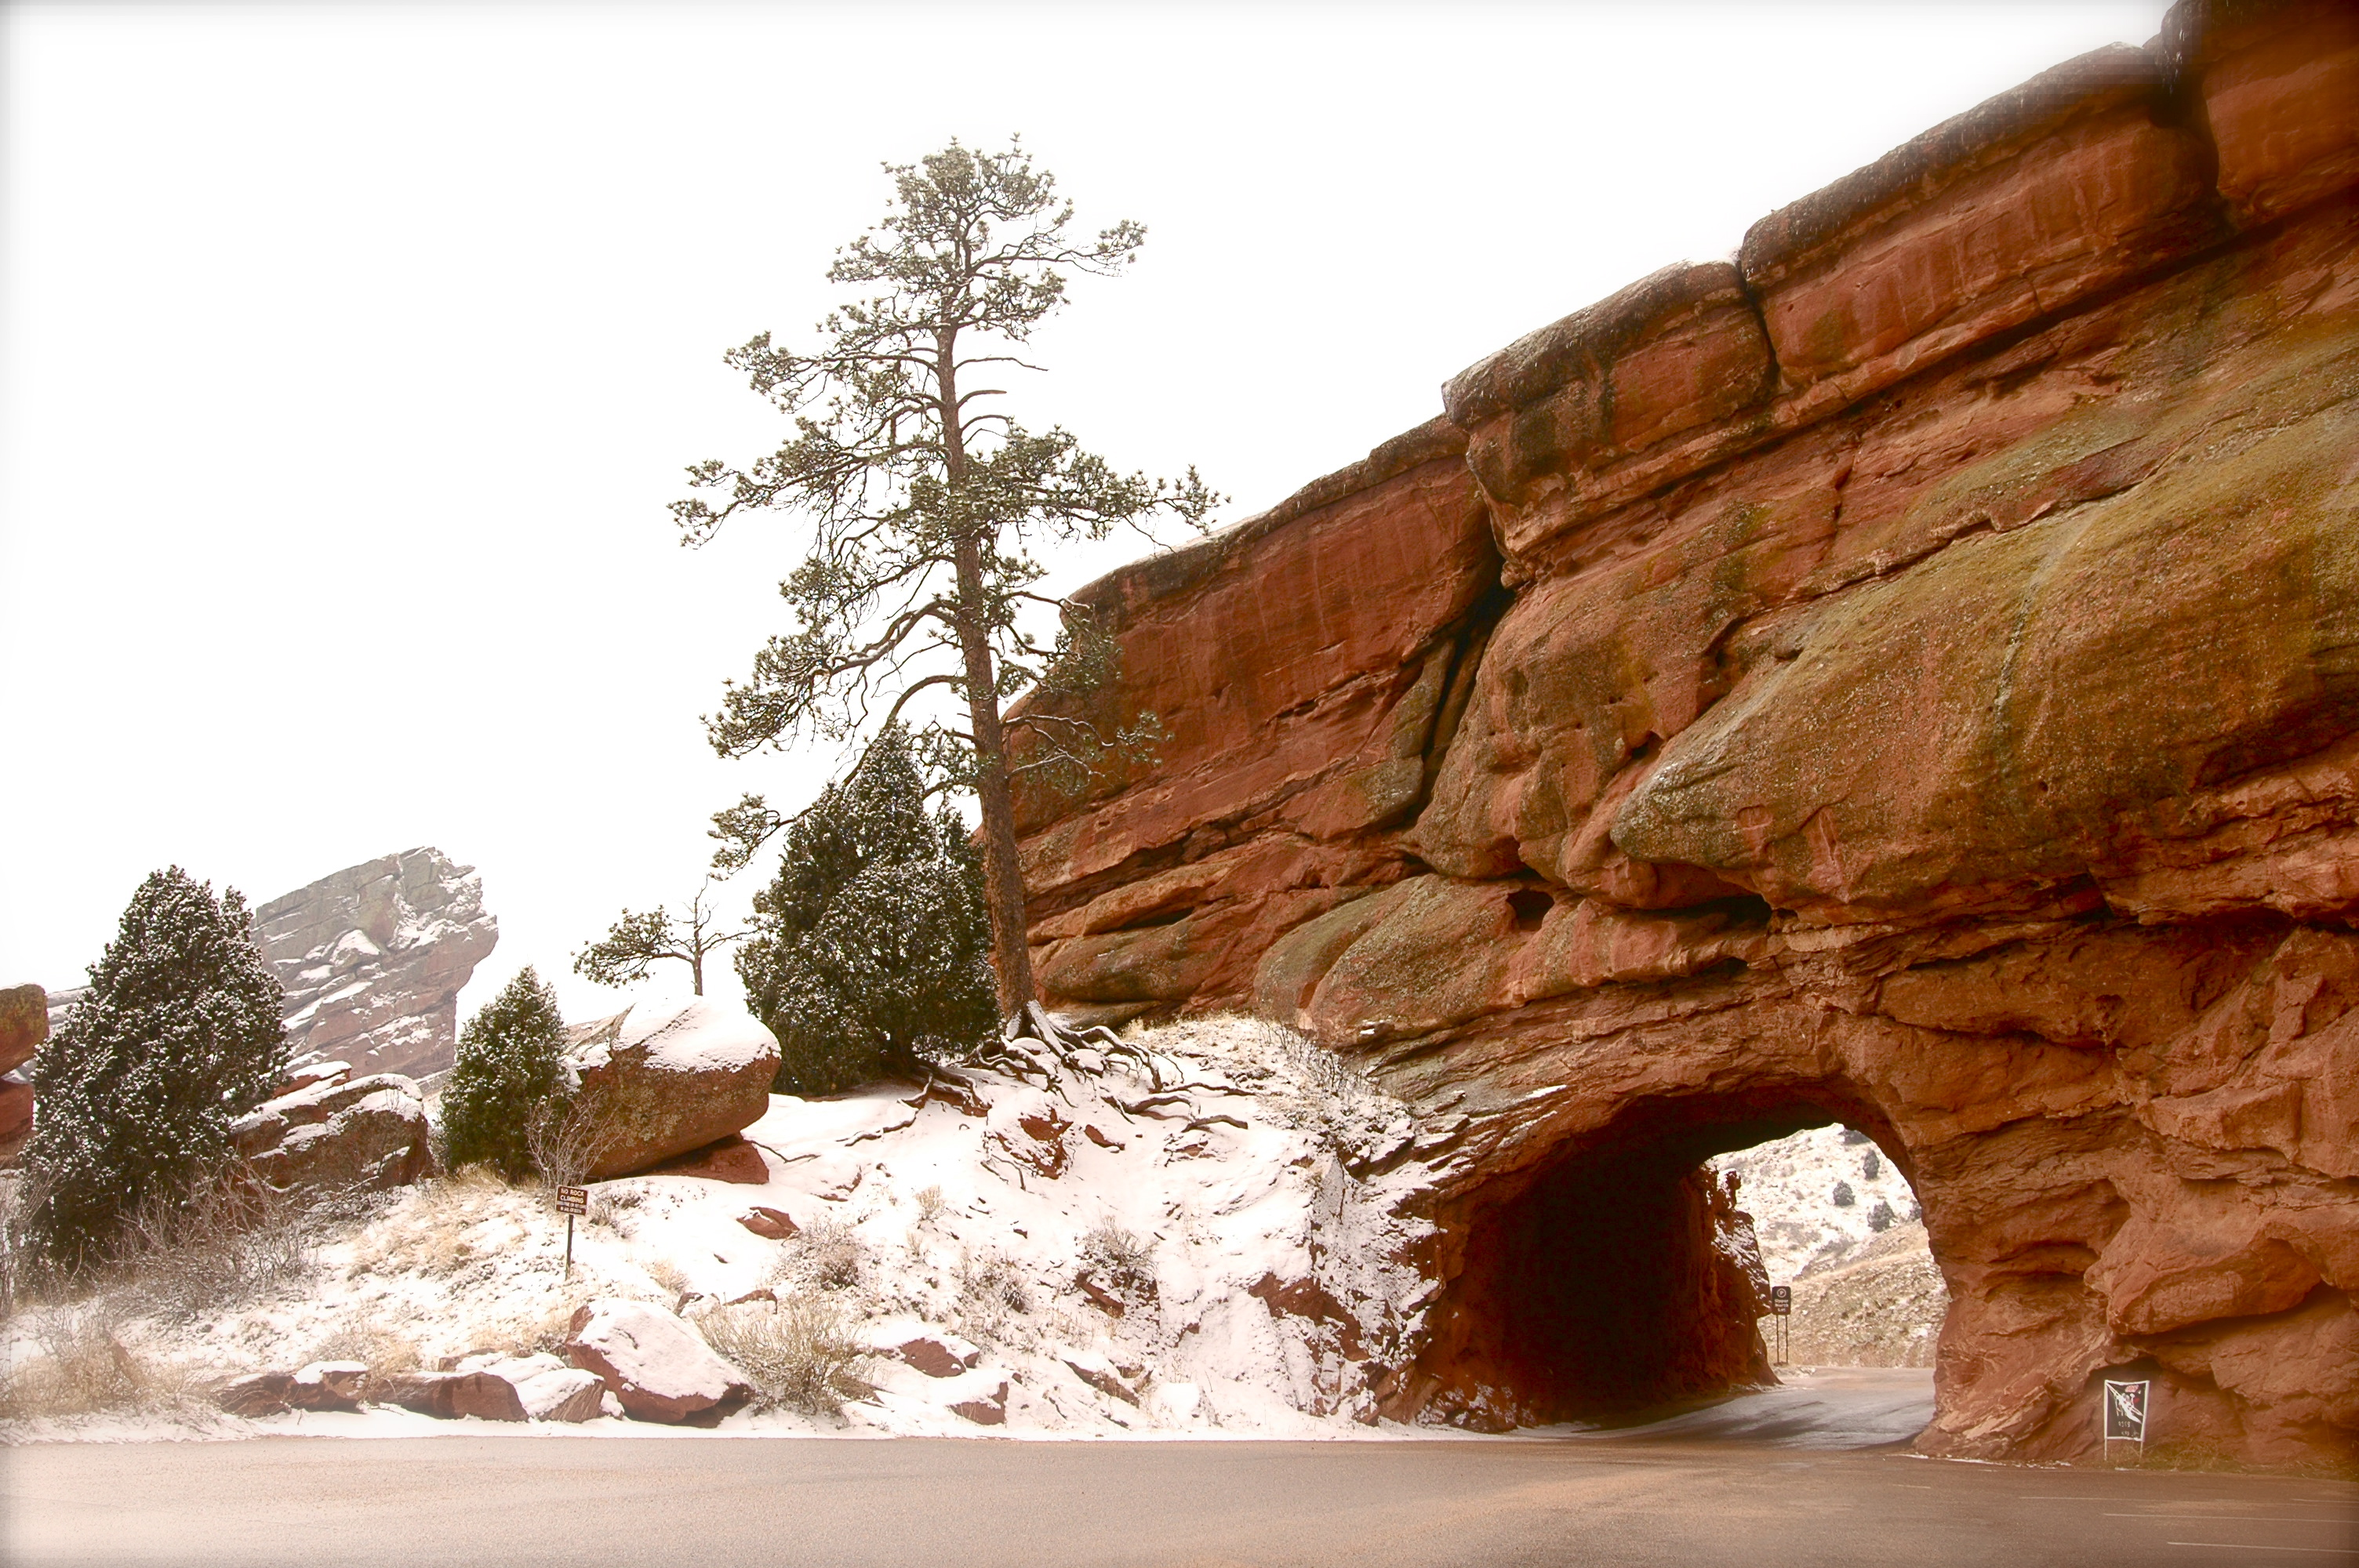 Tunnel through the snowy red rocks photo